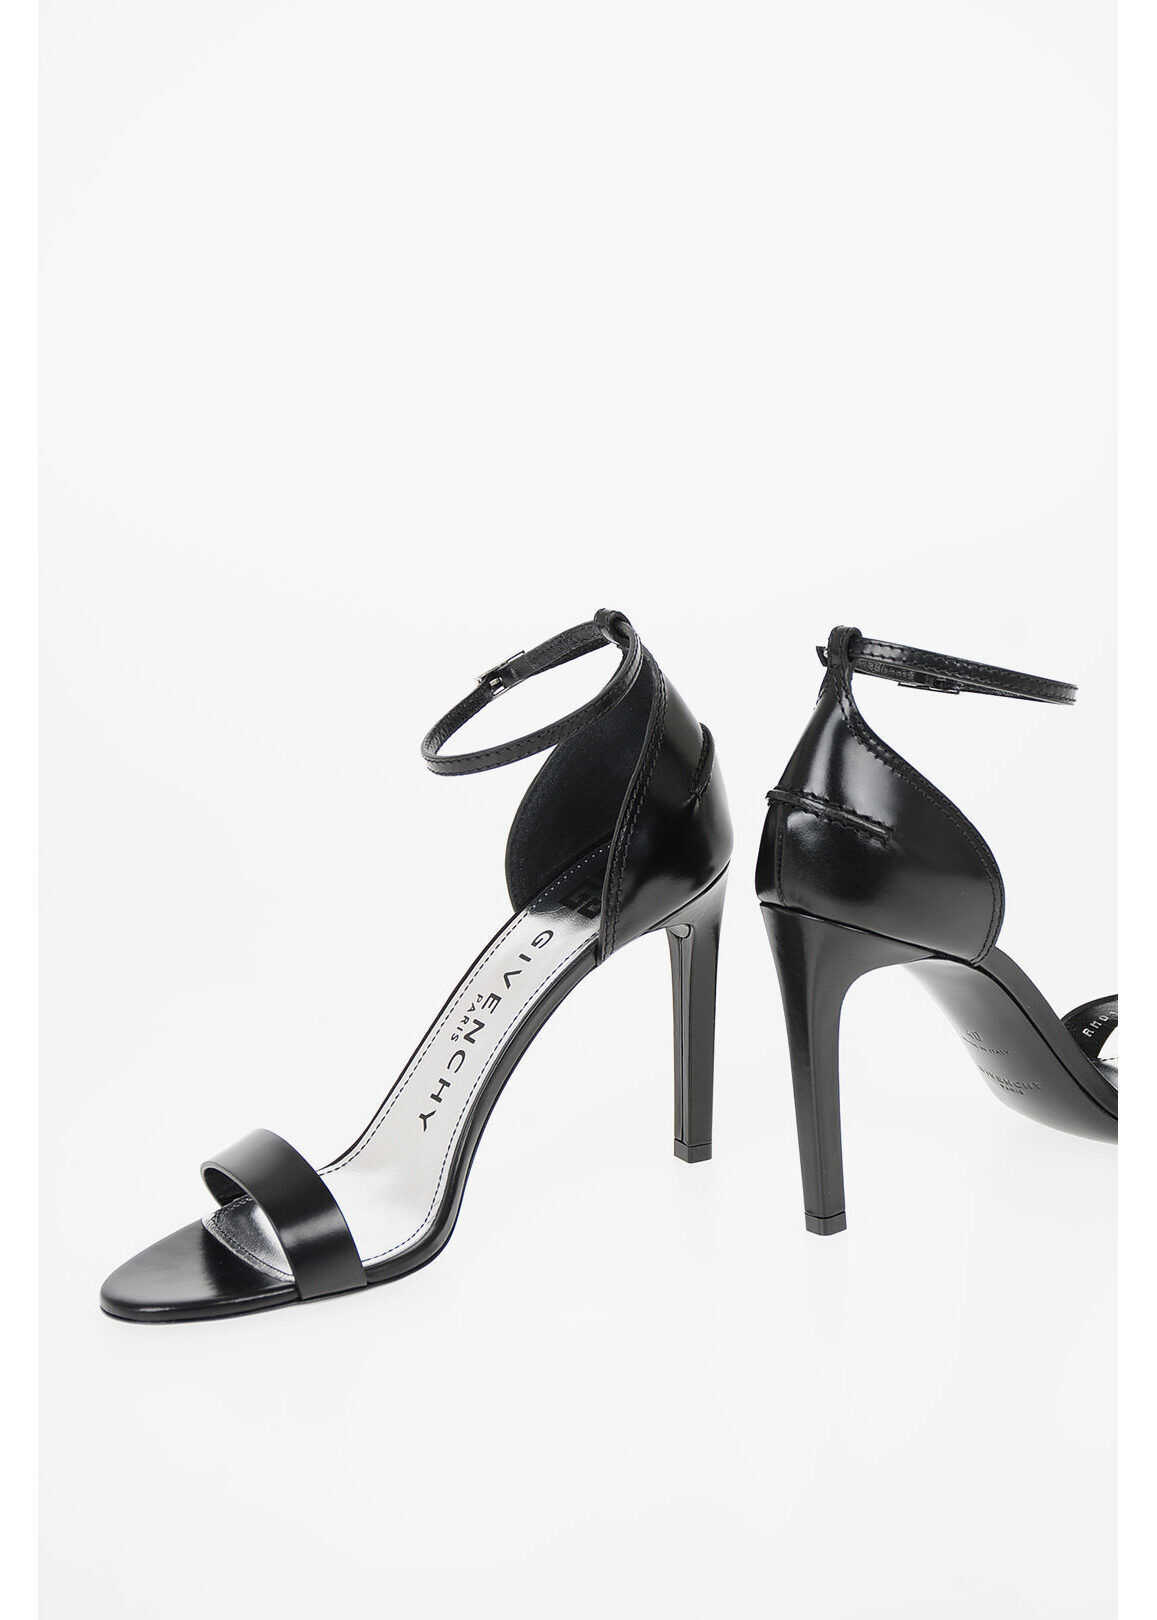 Givenchy 10cm leather SHOW Stiletto Heel Ankle-strap sandals BLACK